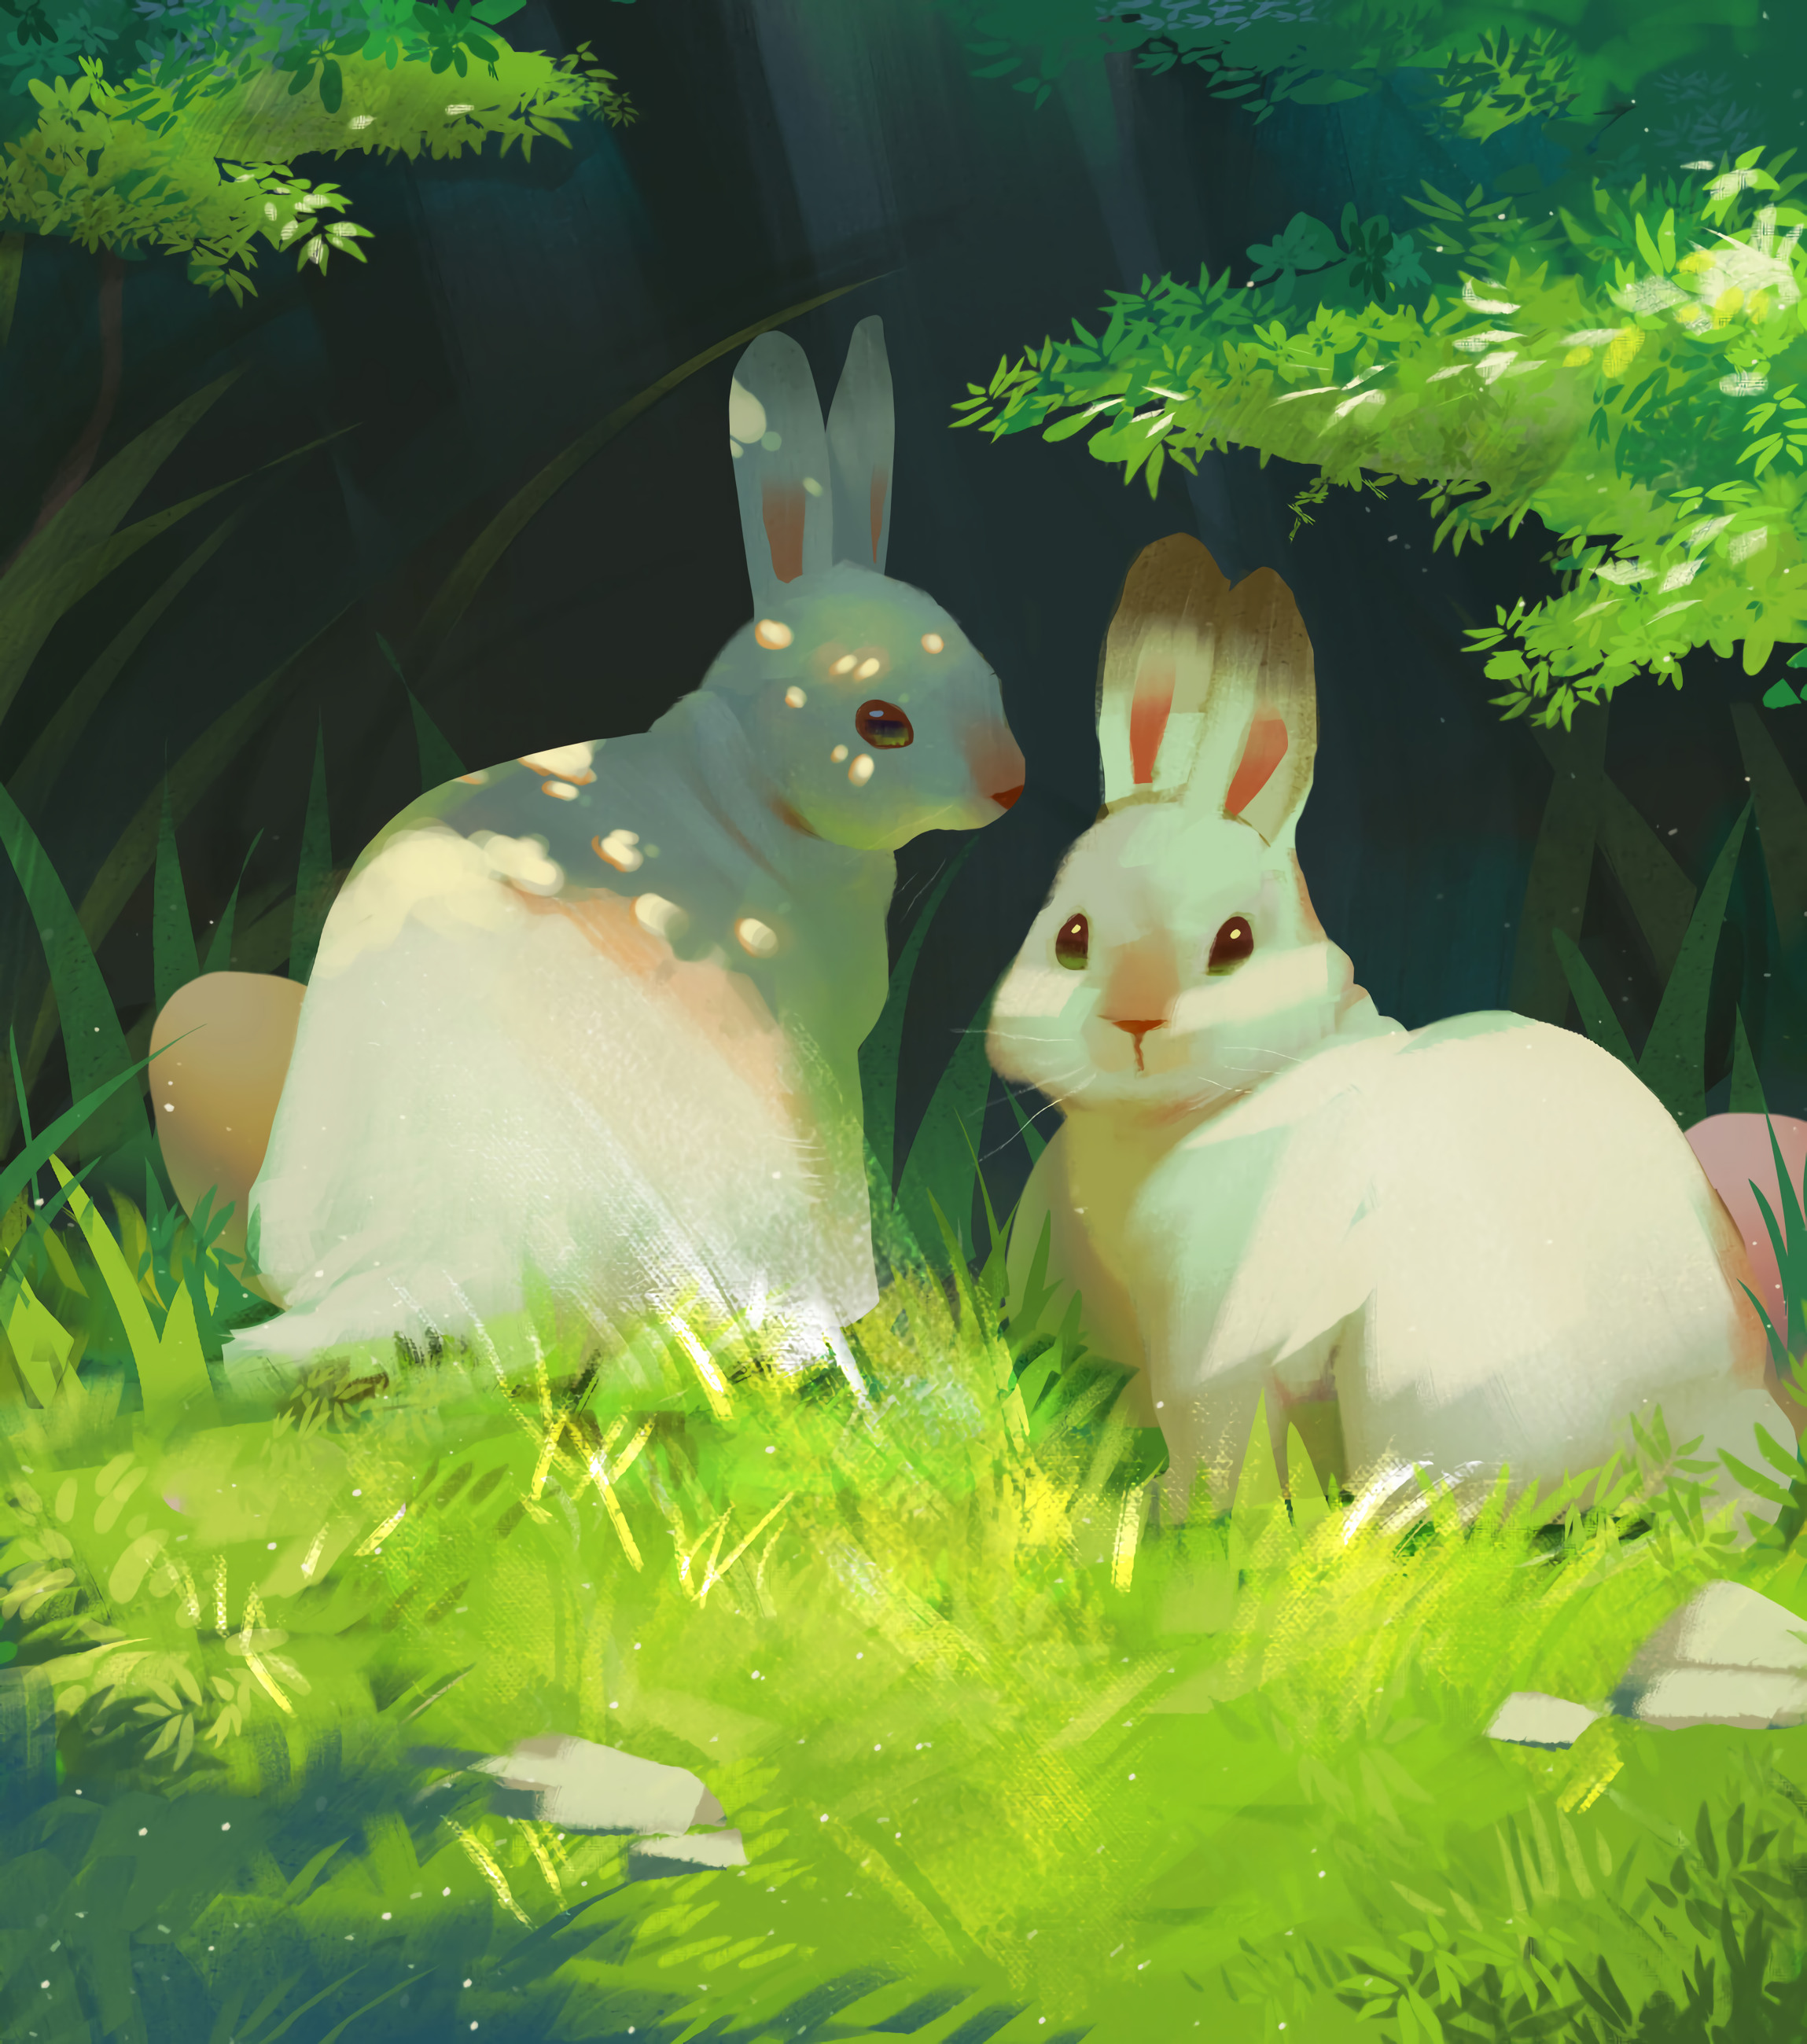 54837 download wallpaper Grass, Art, Rabbits, Nice, Sweetheart, Animation screensavers and pictures for free